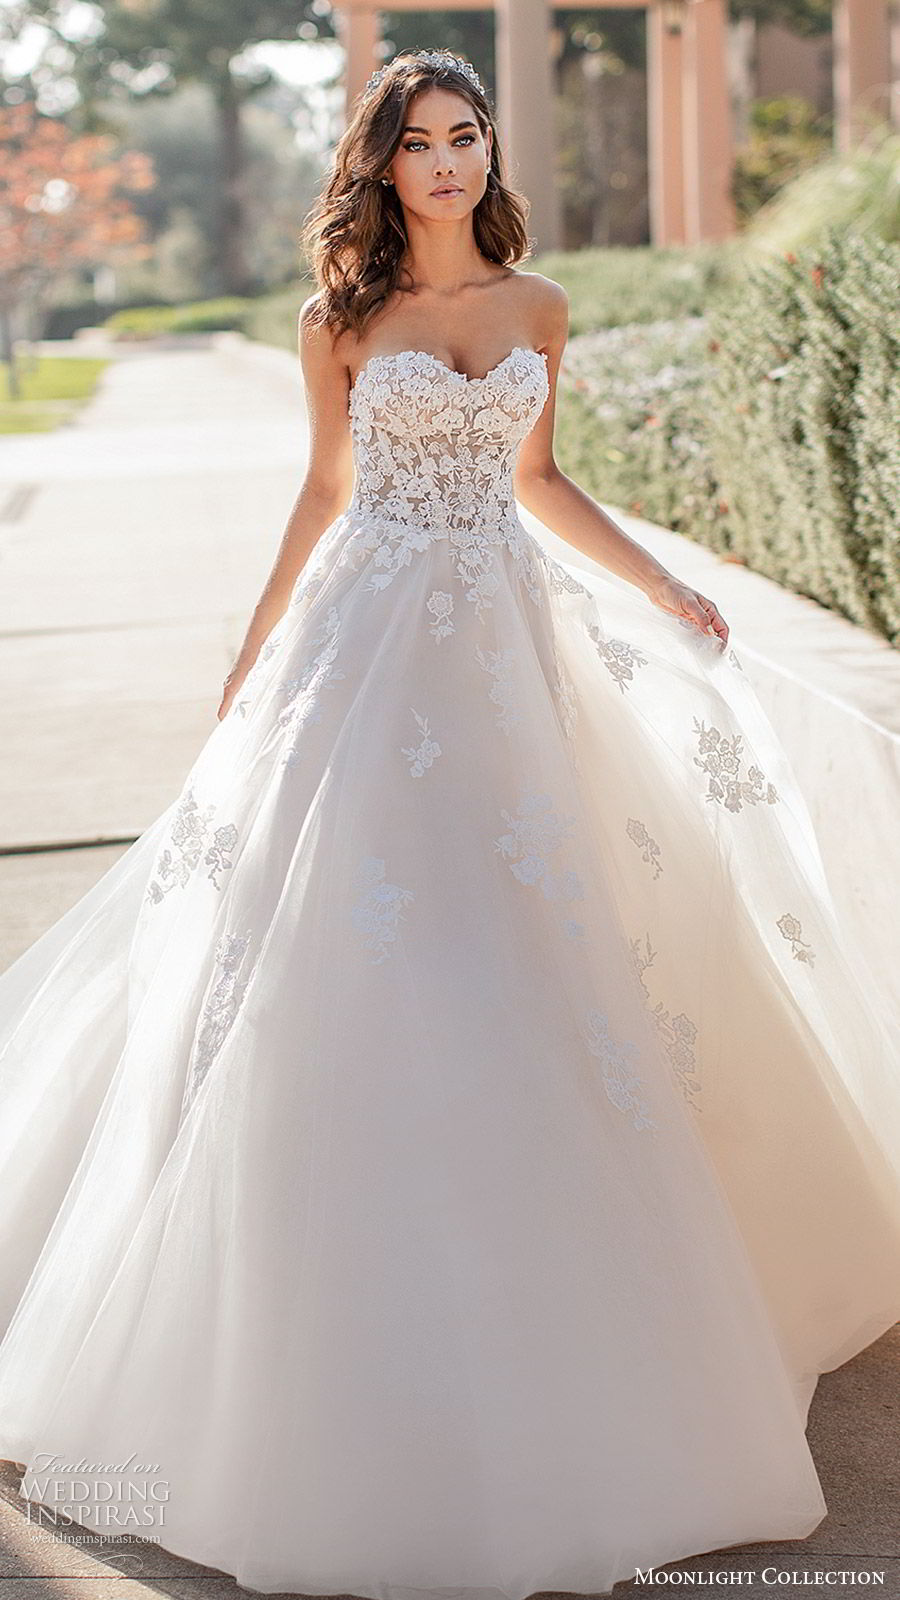 moonlight collection fall 2019 bridal strapless sweetheart embellished bodice lace ball gown a line wedding dress (6) romantic princess elegant chapel train mv